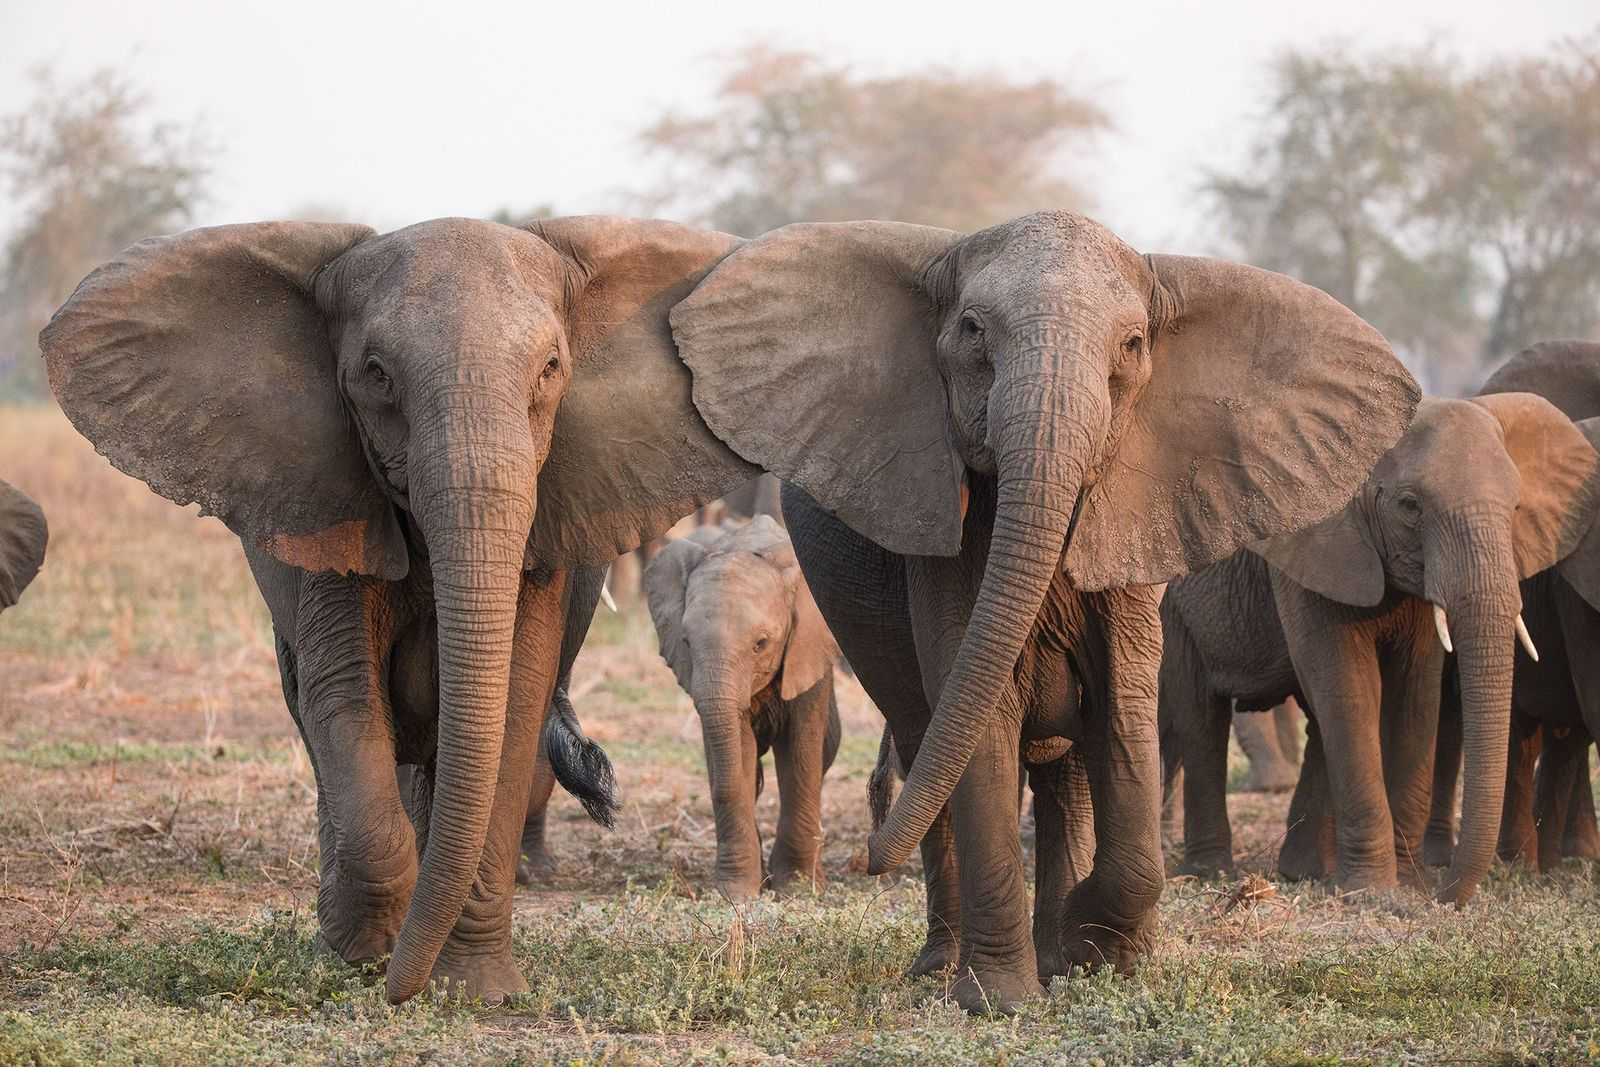 Elephants are evolving to lose their tusks, under poaching pressure